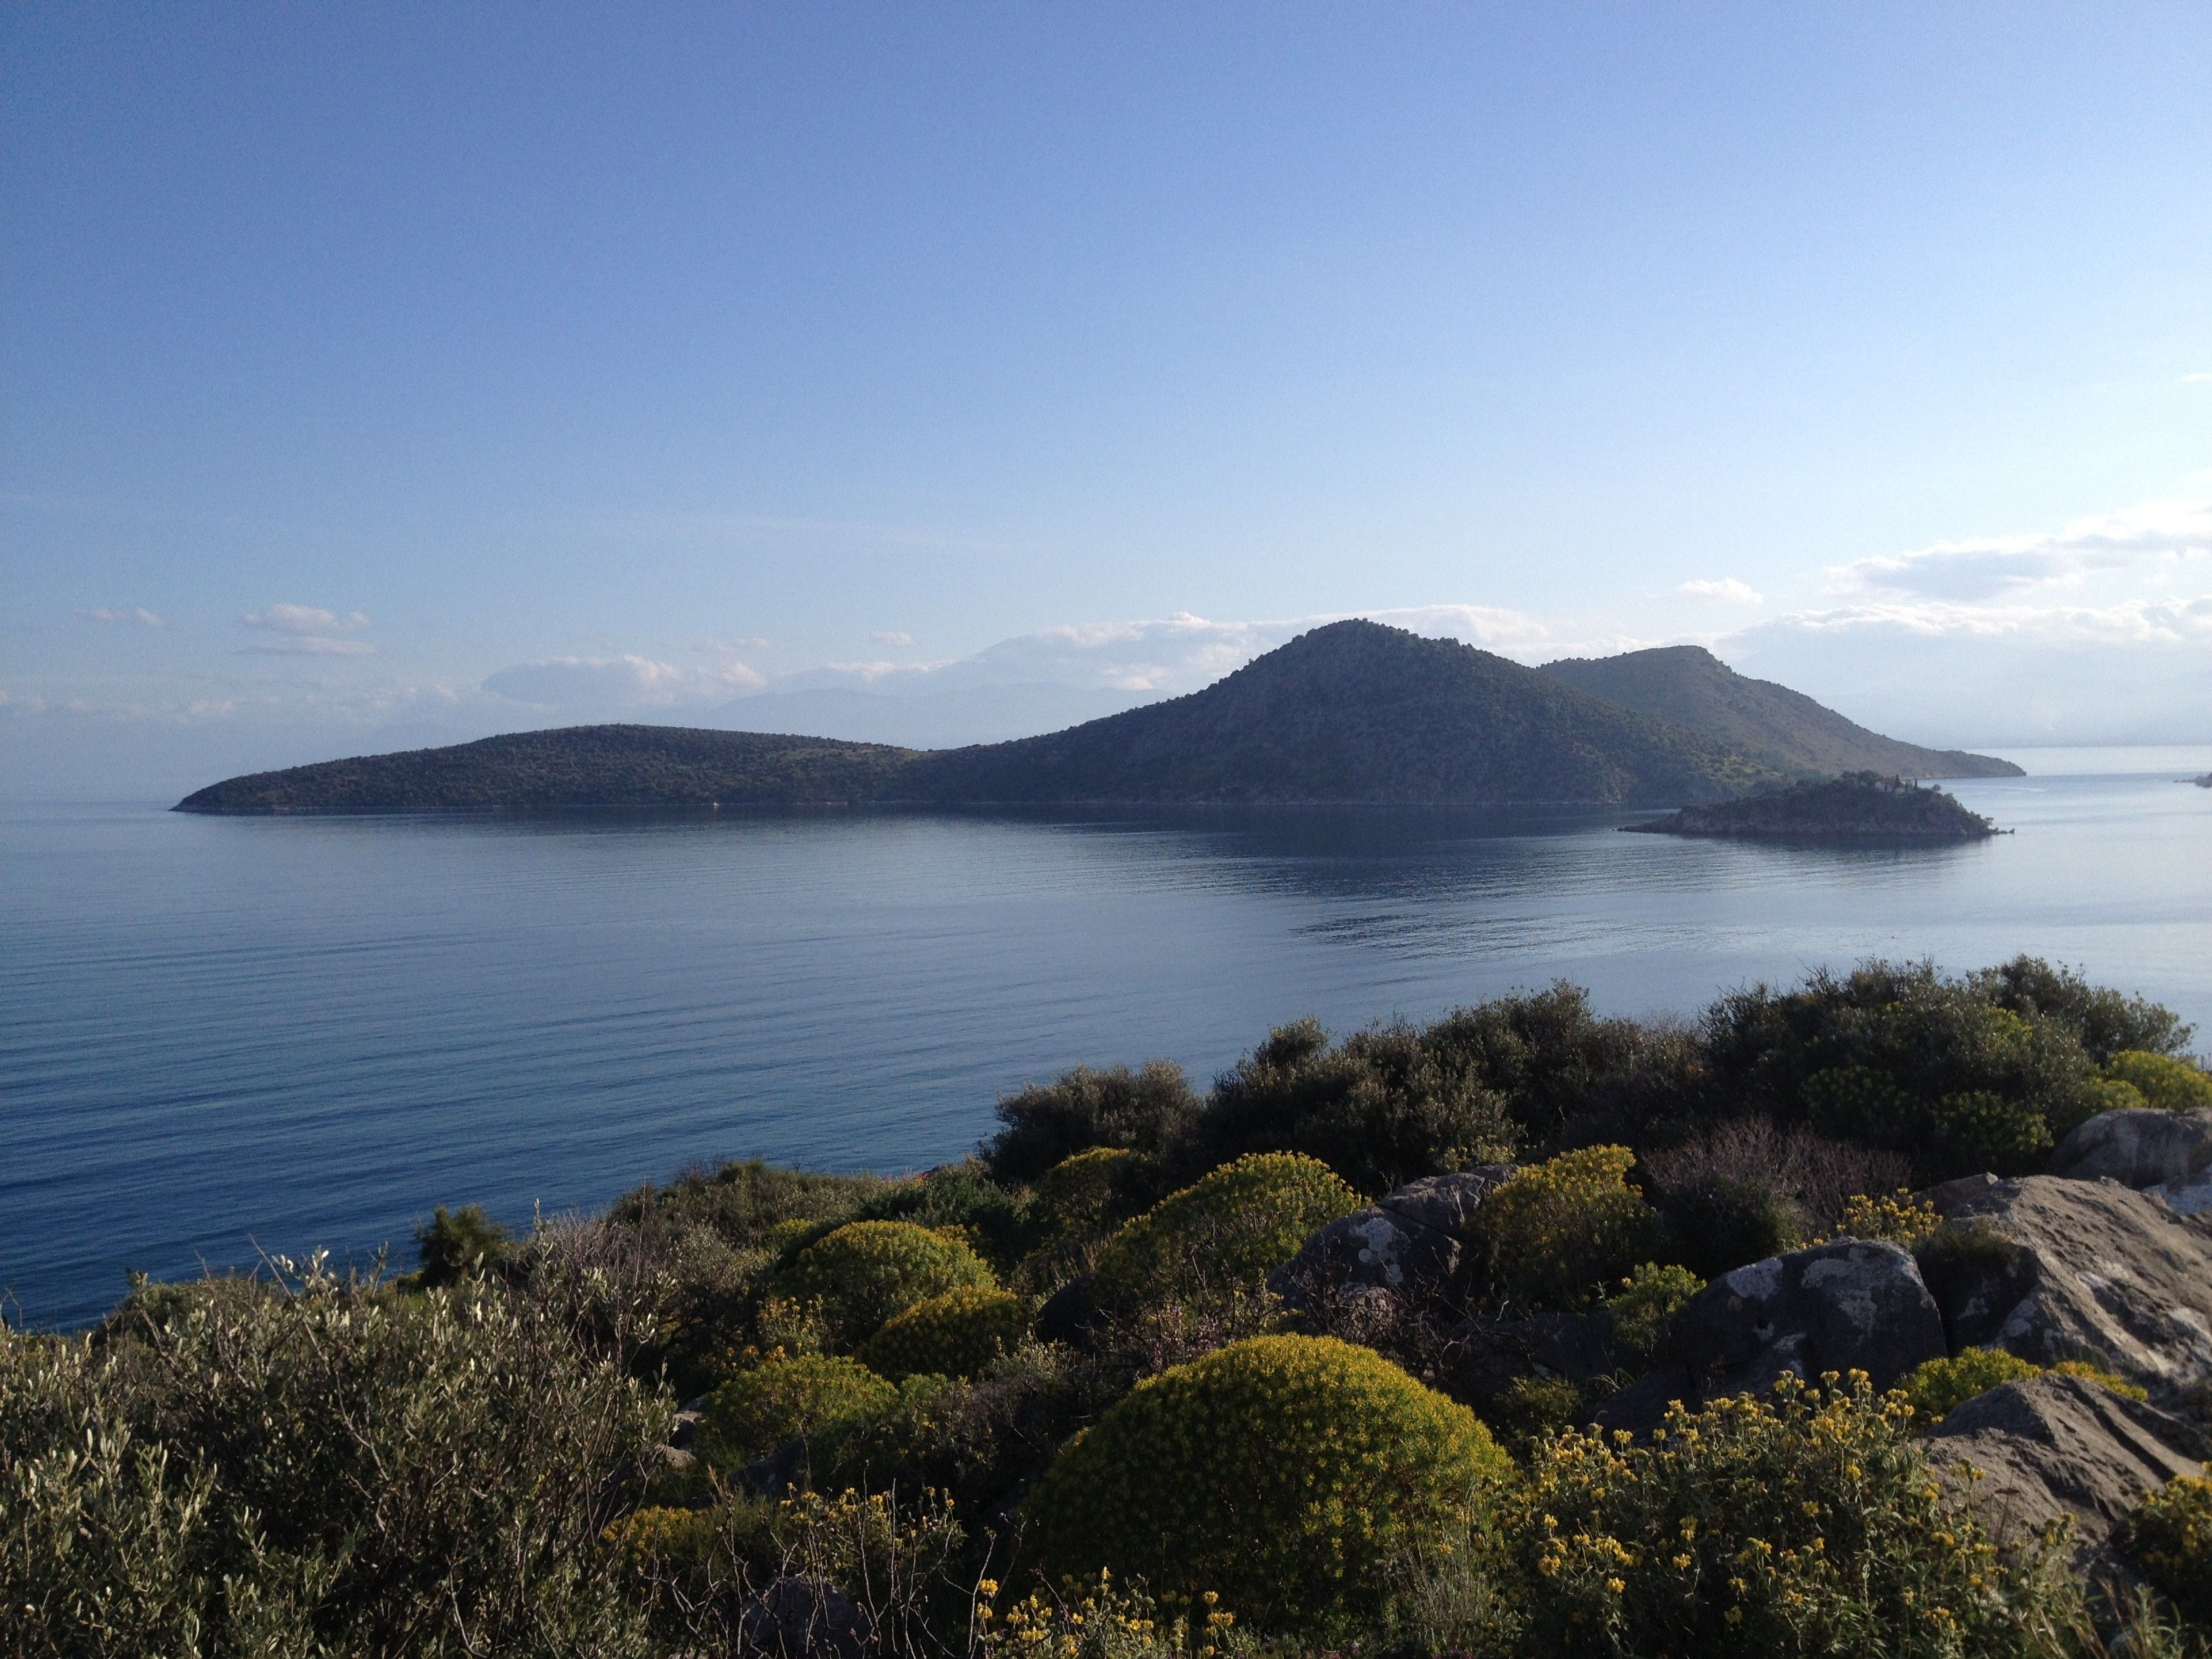 Bay Of Tolo Greece 3264 X 2448 Hd Wallpaper From Gallsourcecom